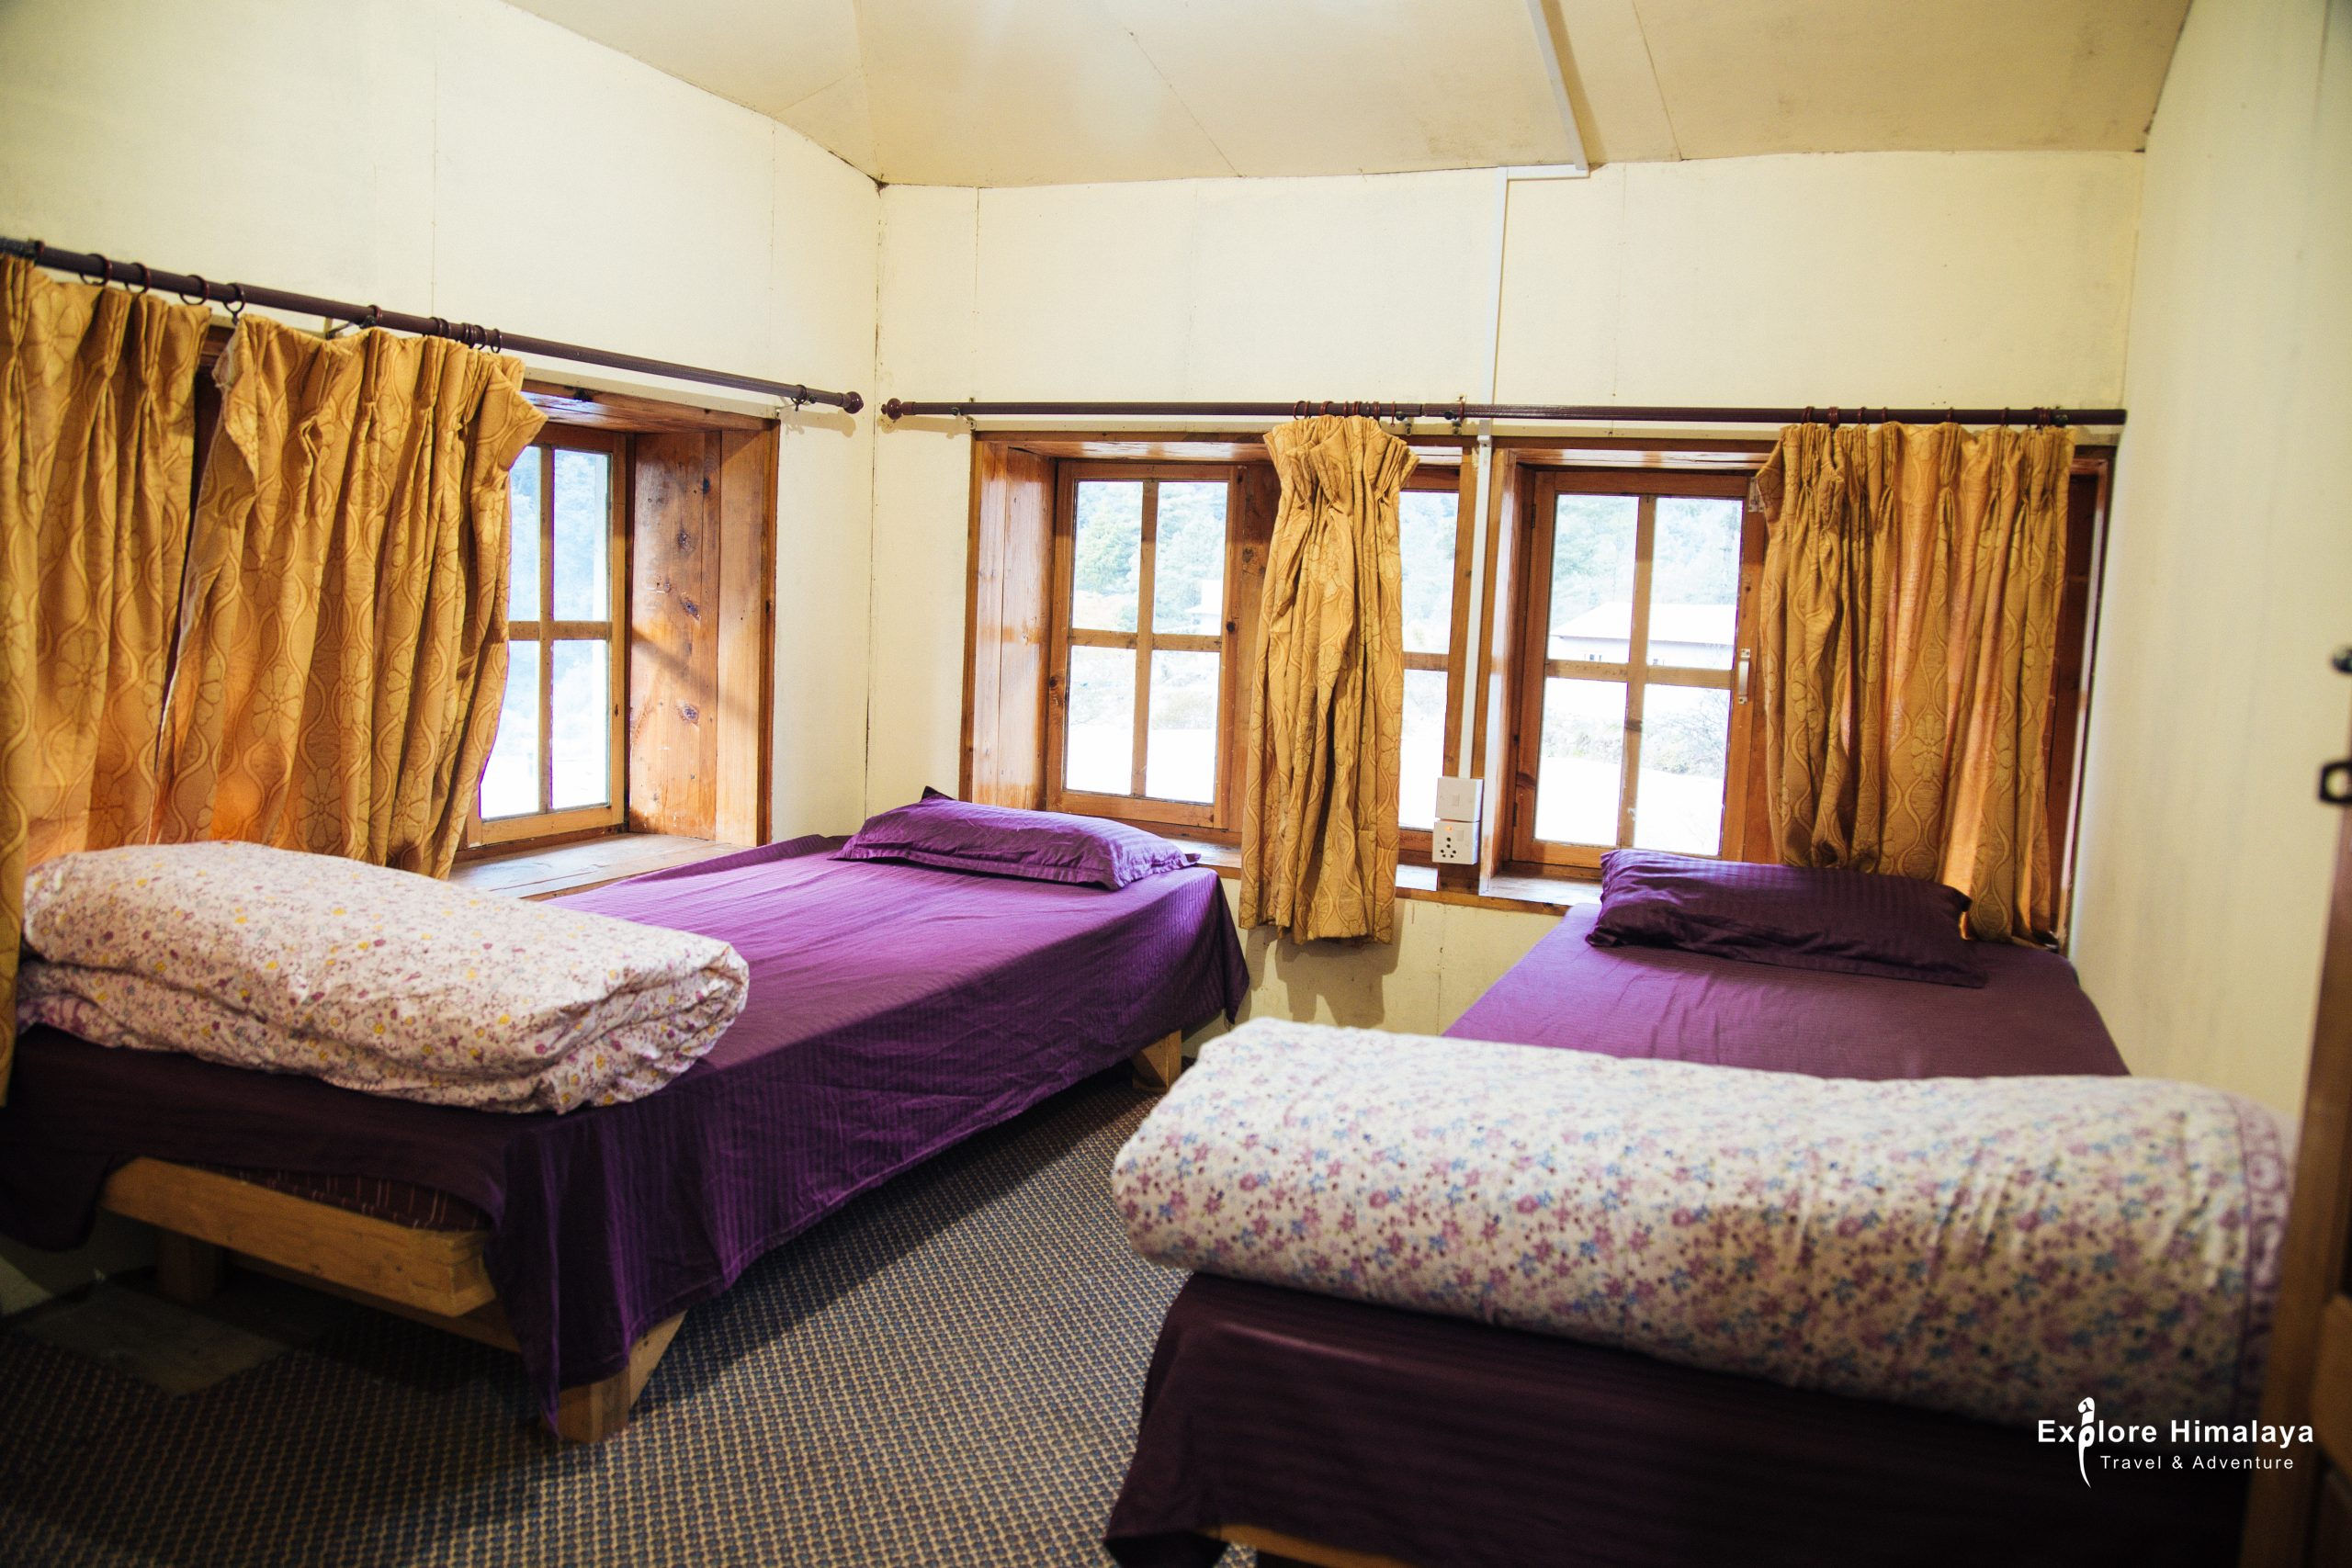 Accommodation in Everest Base Camp trek - Tea House Hotel Room in Everest Region